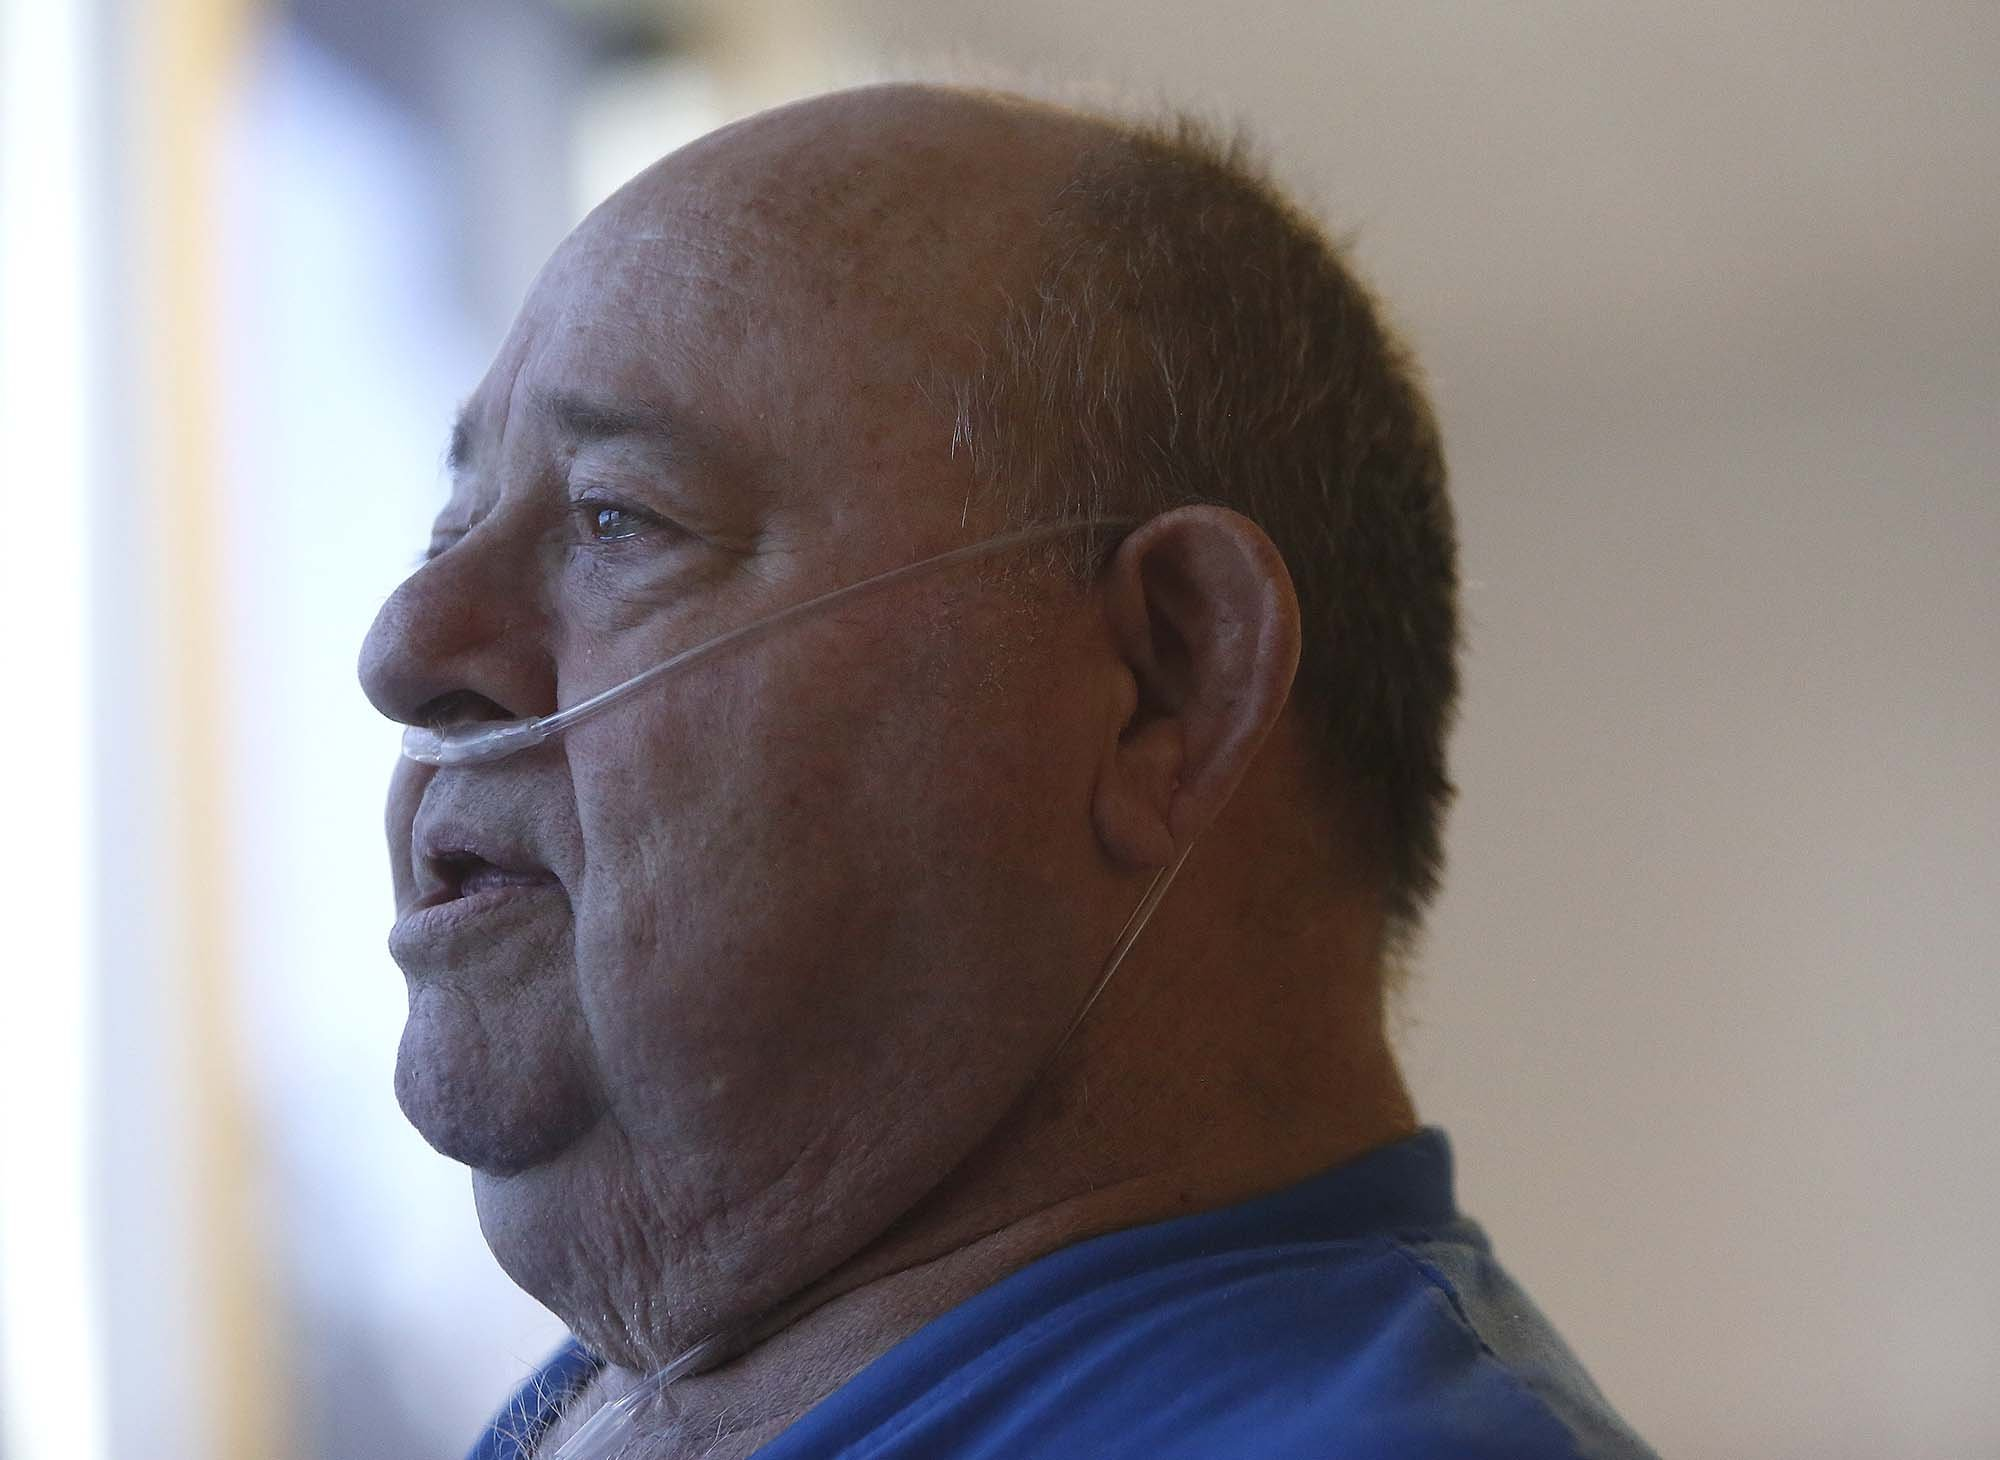 Retired school teacher and evacuee from Twisp, John Lewis, waits out the wildfire and for air quality conditions to improve at the Brewster Community Center in Brewster, Wash., Friday, Aug. 21, 2015. Lewis has Chronic Obstructive Pulmonary Disease, and remains indoors until air quality conditions improve.